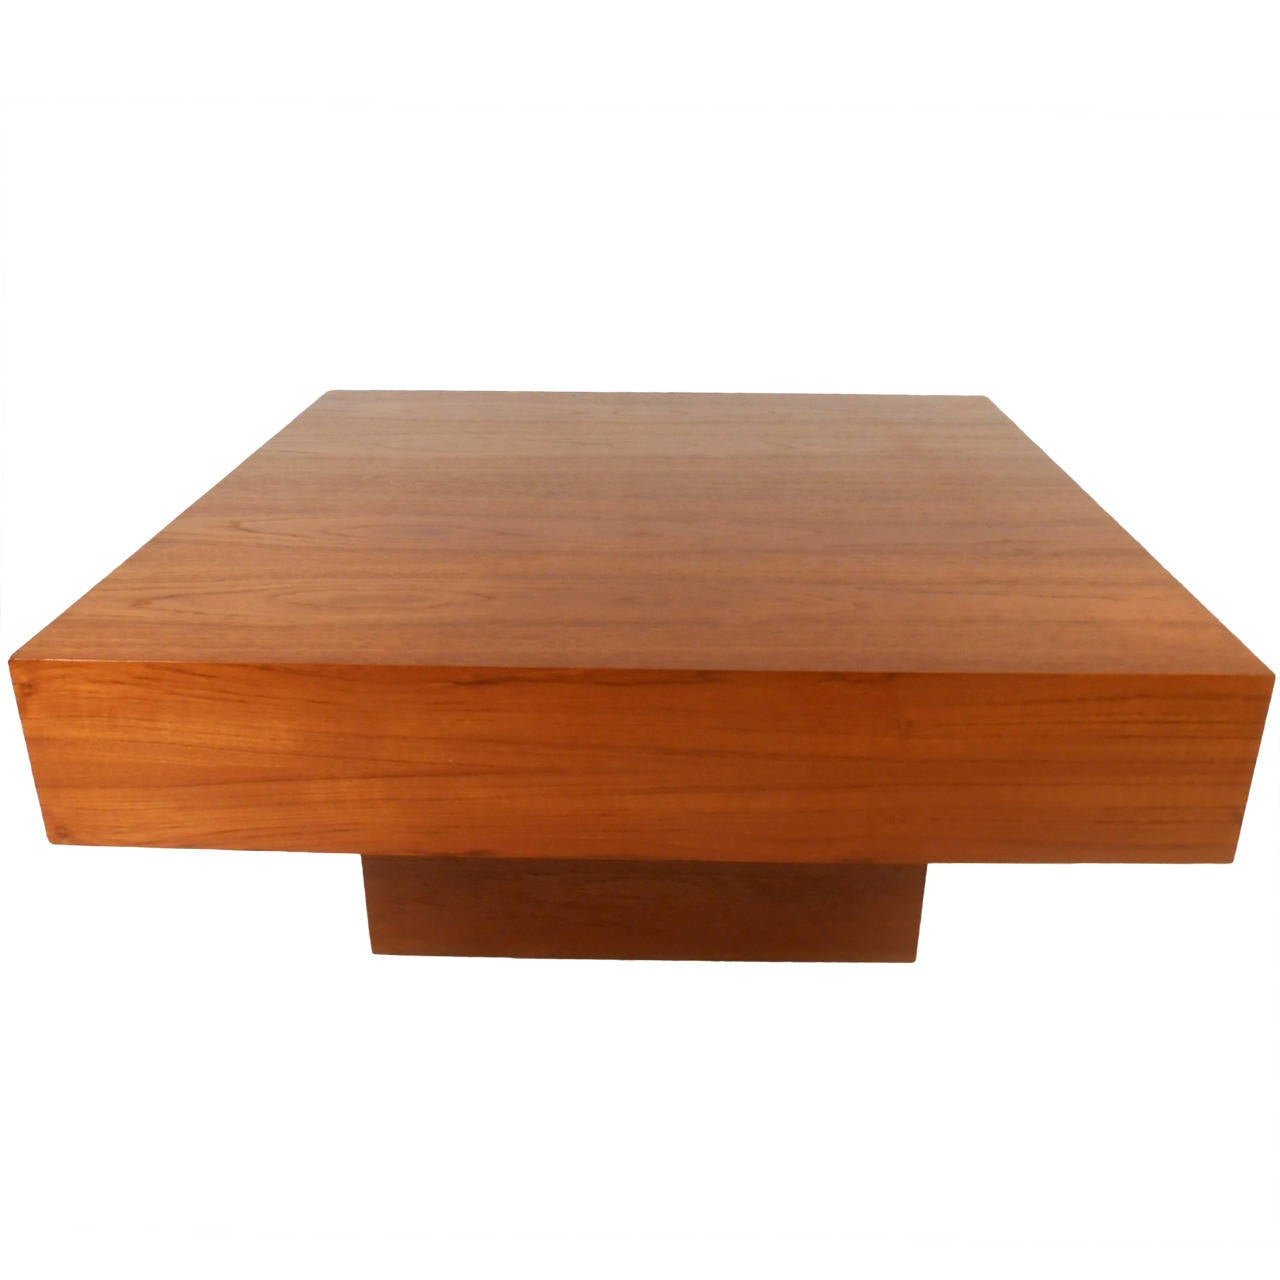 Mid century modern style teak center table for sale at 1stdibs for Center table coffee table